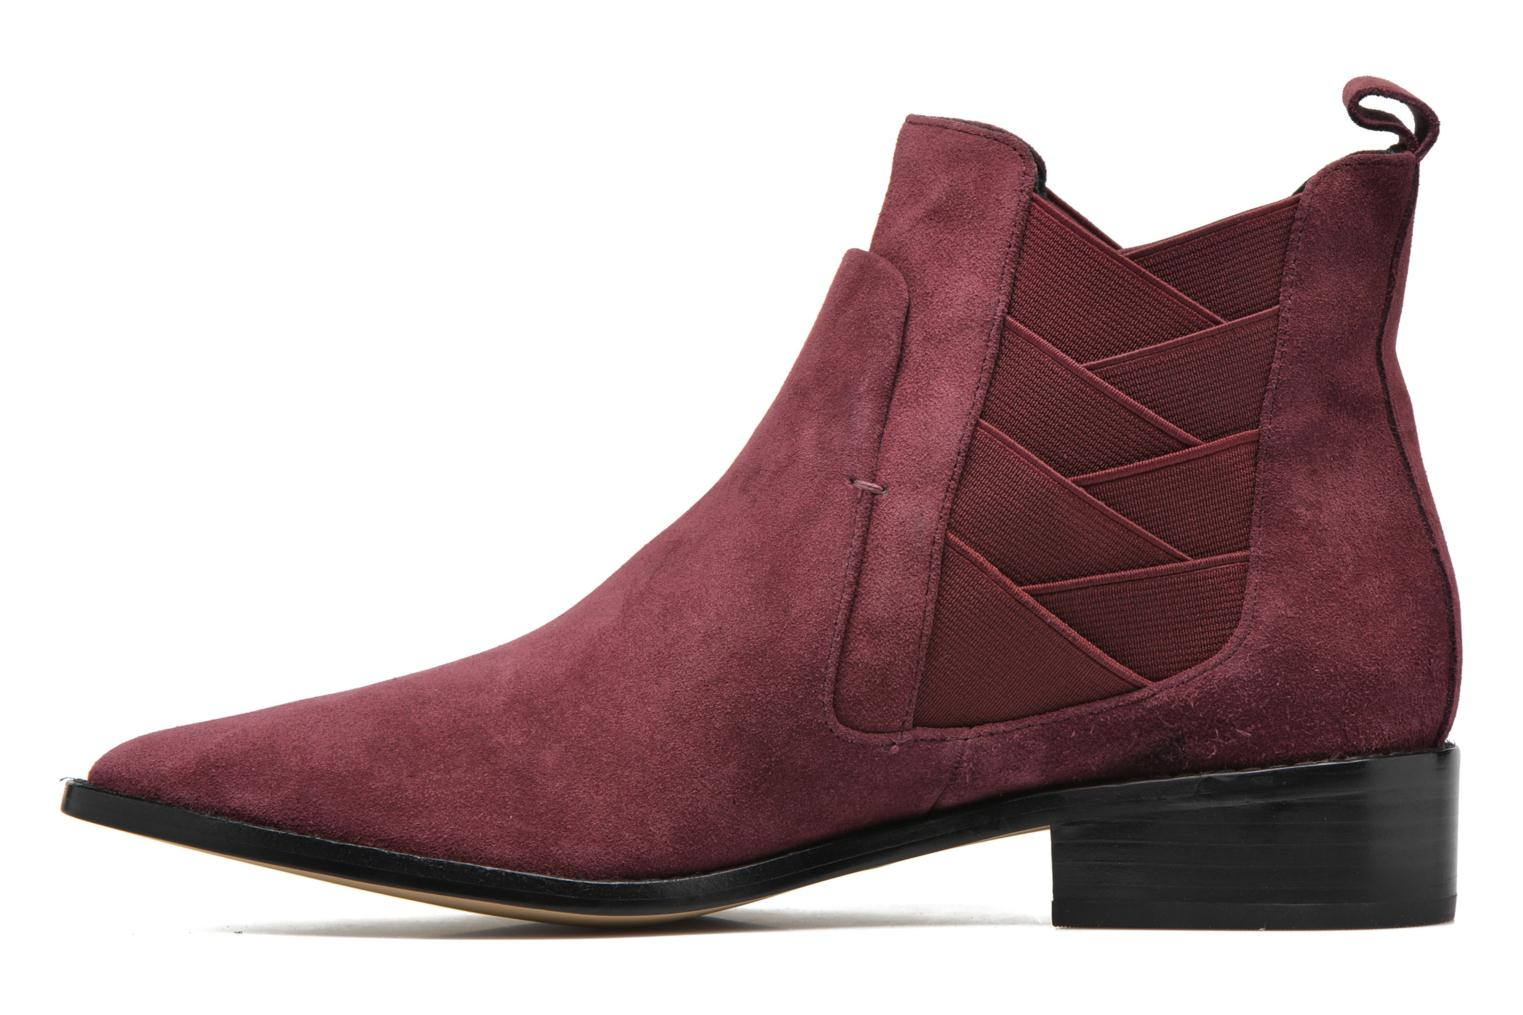 JACY dark marron oiled suede